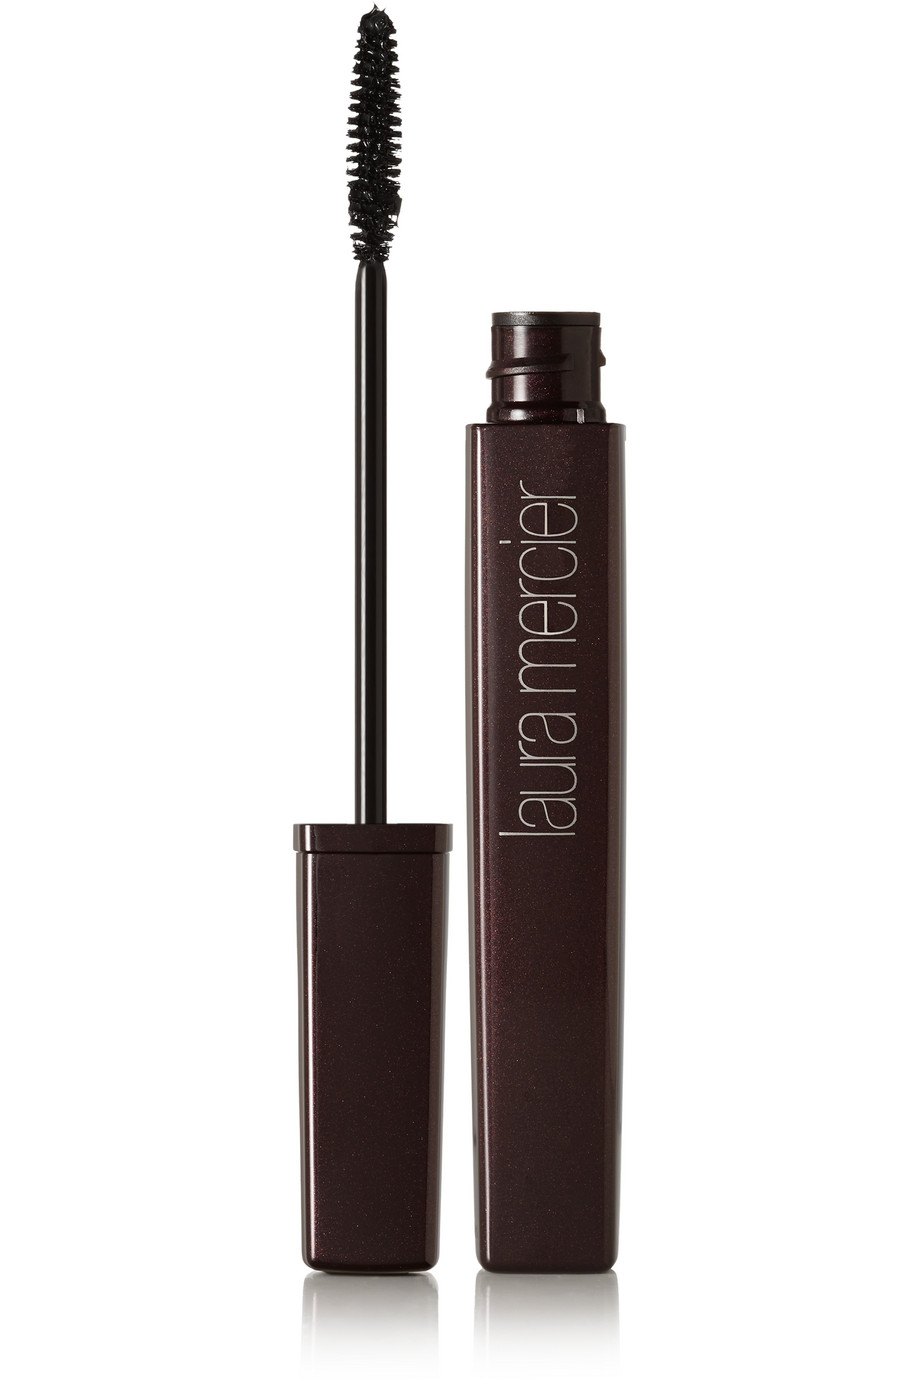 Laura Mercier Long Lash Mascara - Black